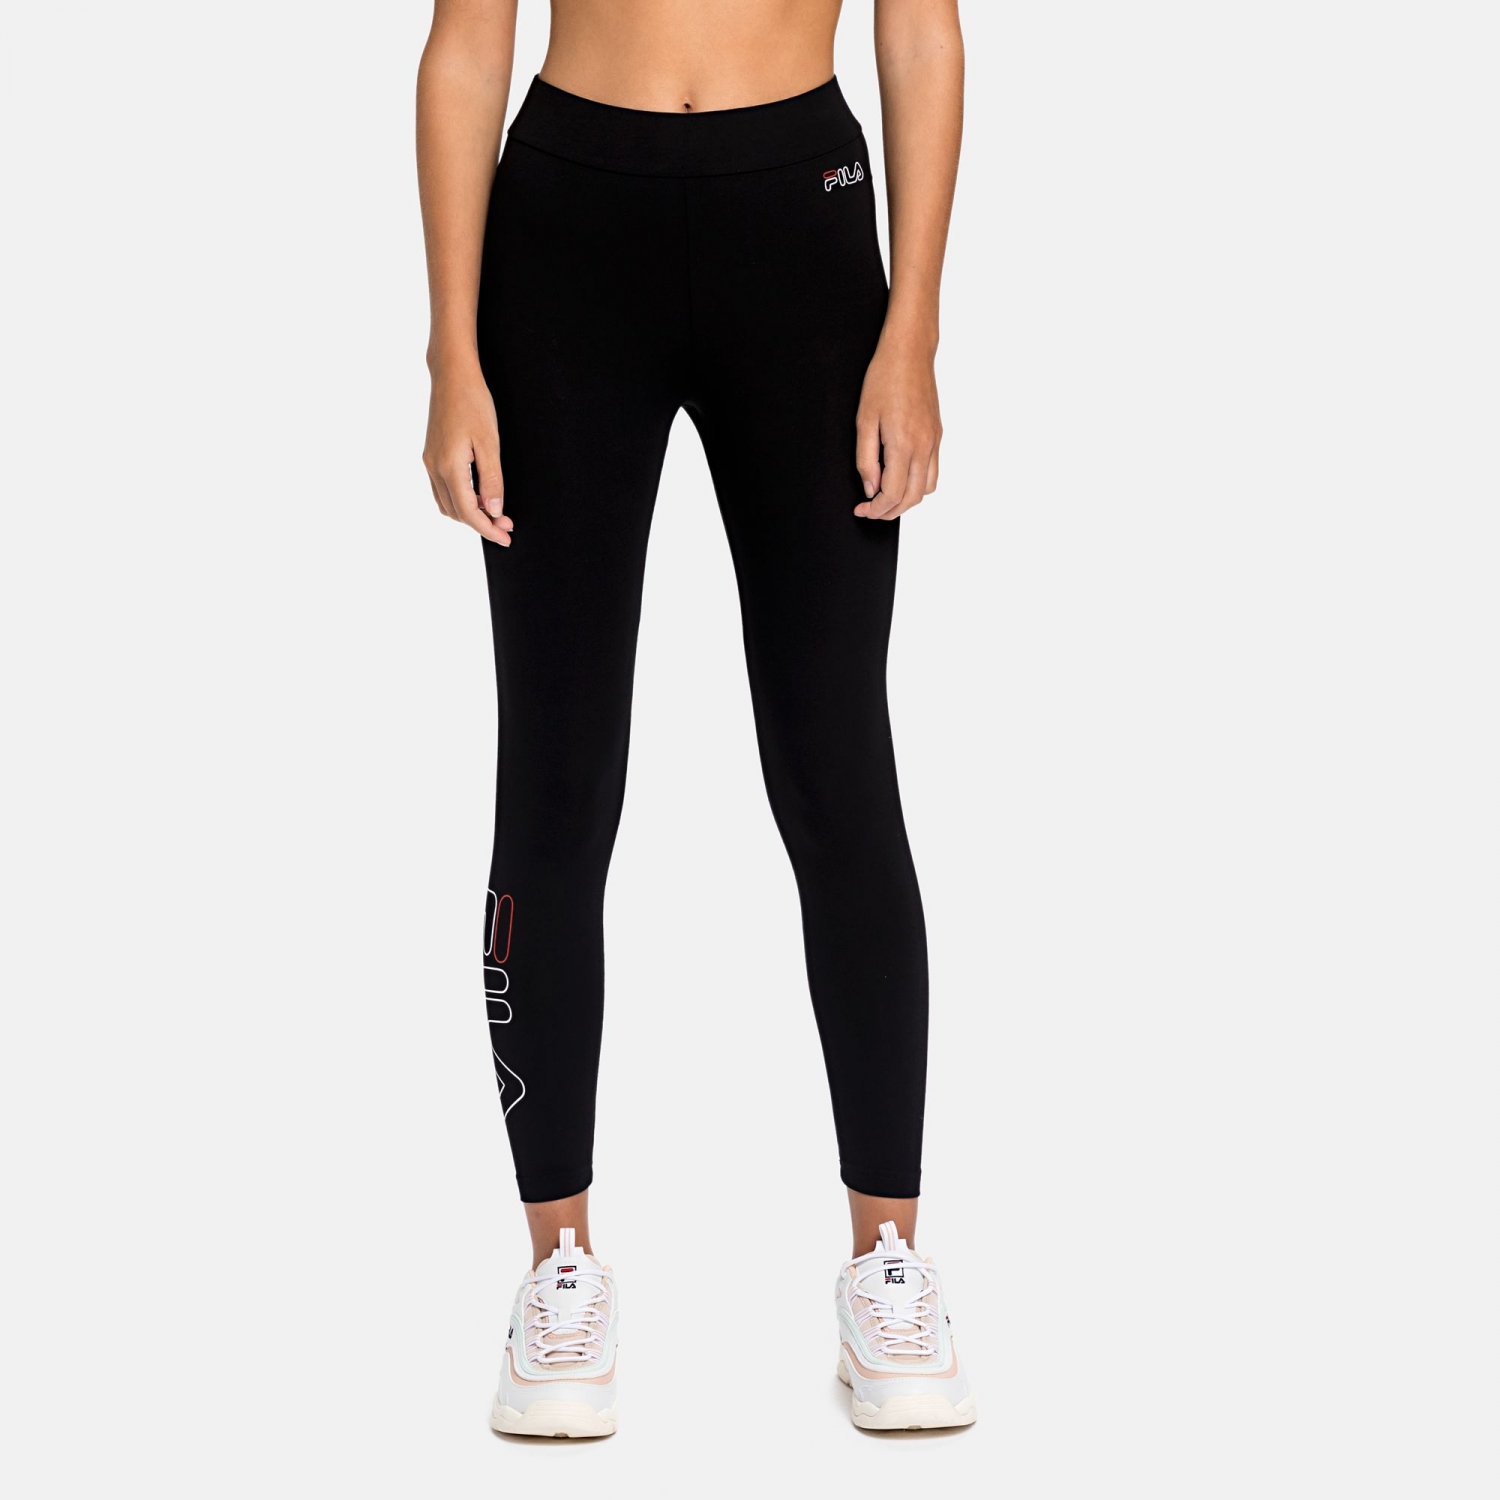 Fila Felice 7/8 Leggings Bild 1